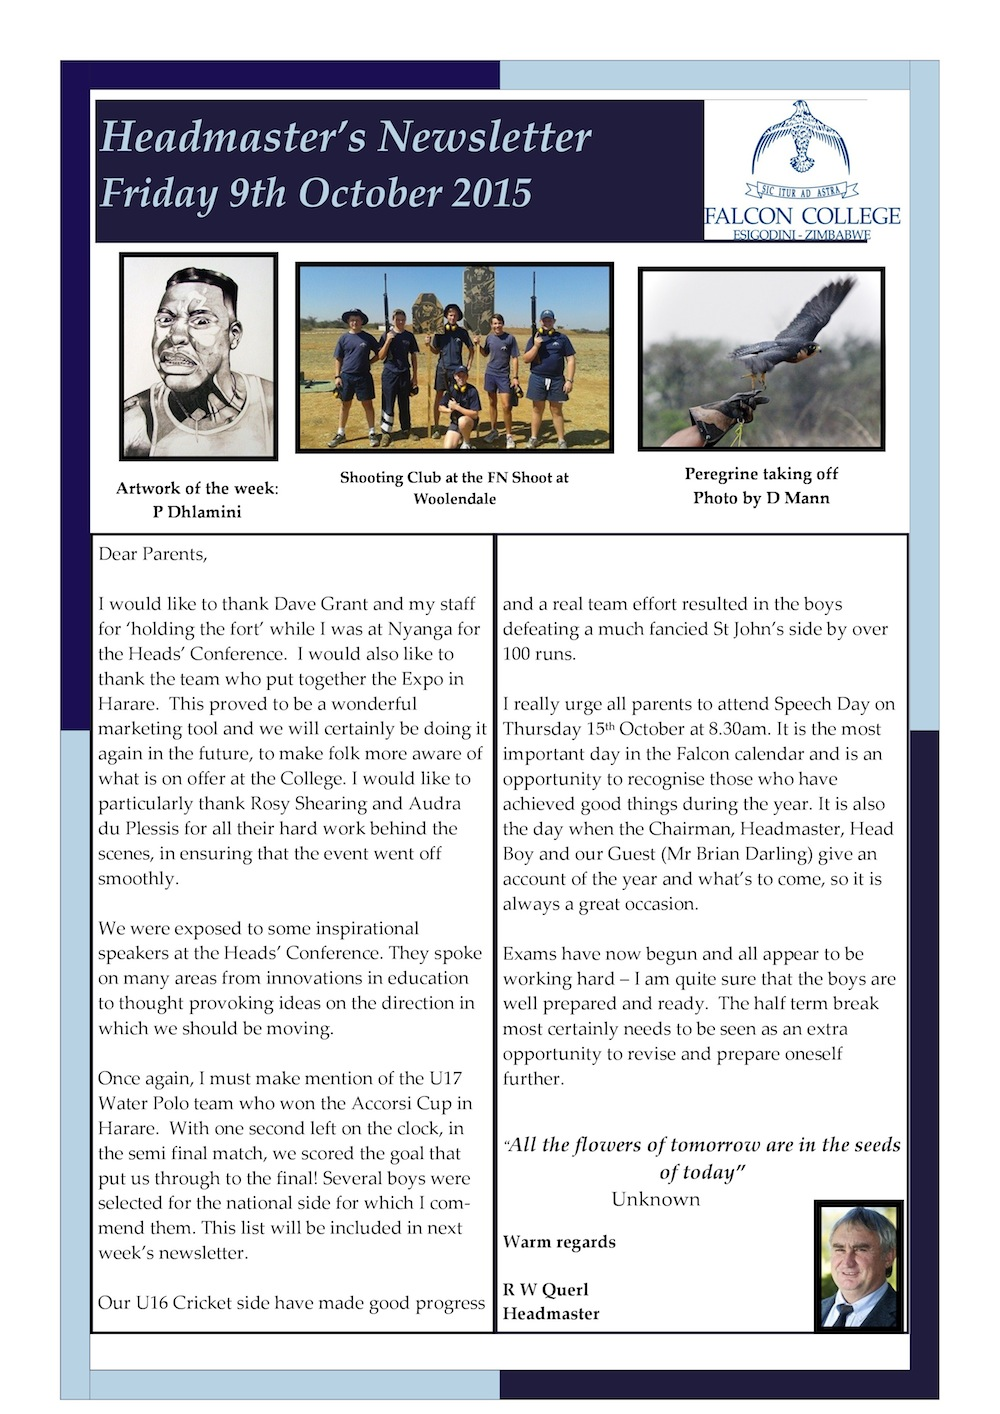 Headmaster's Newsletter Friday 9th October 2015 edited-page-0